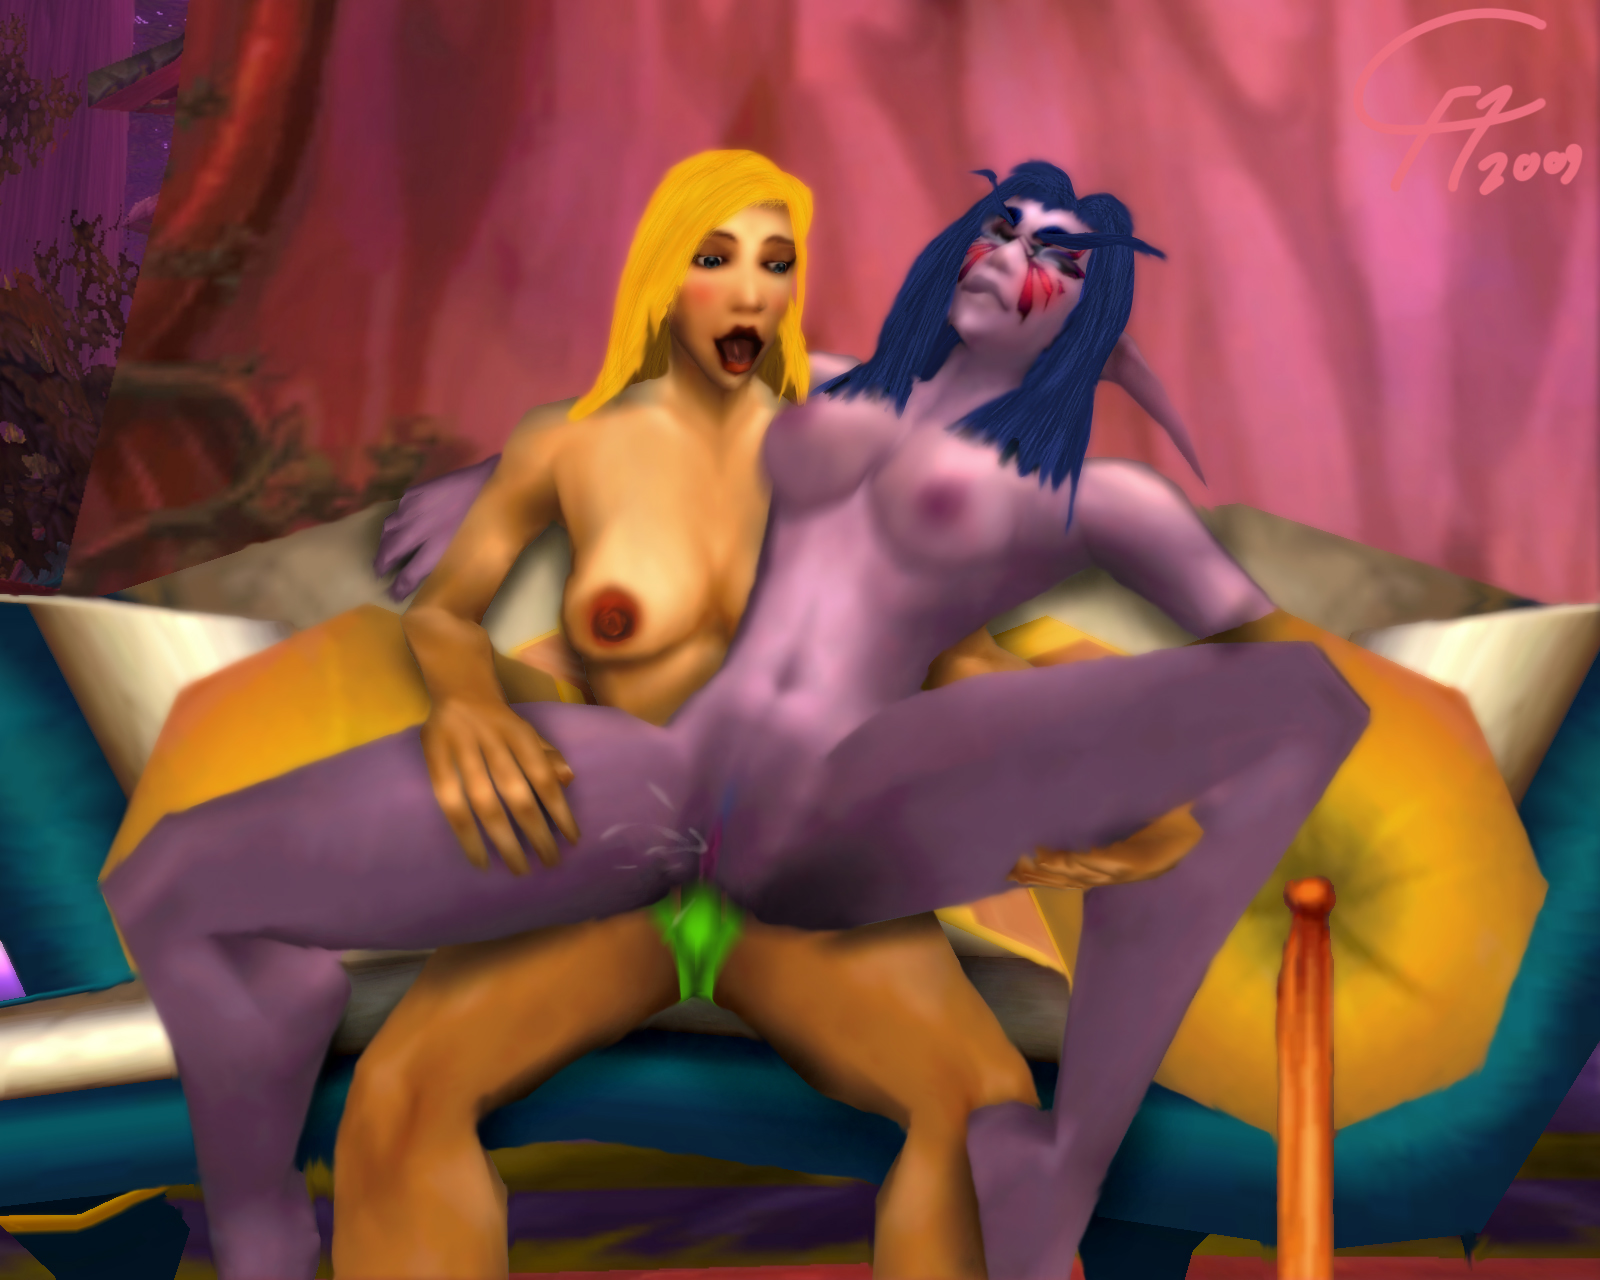 Elven princess porncraft naked images